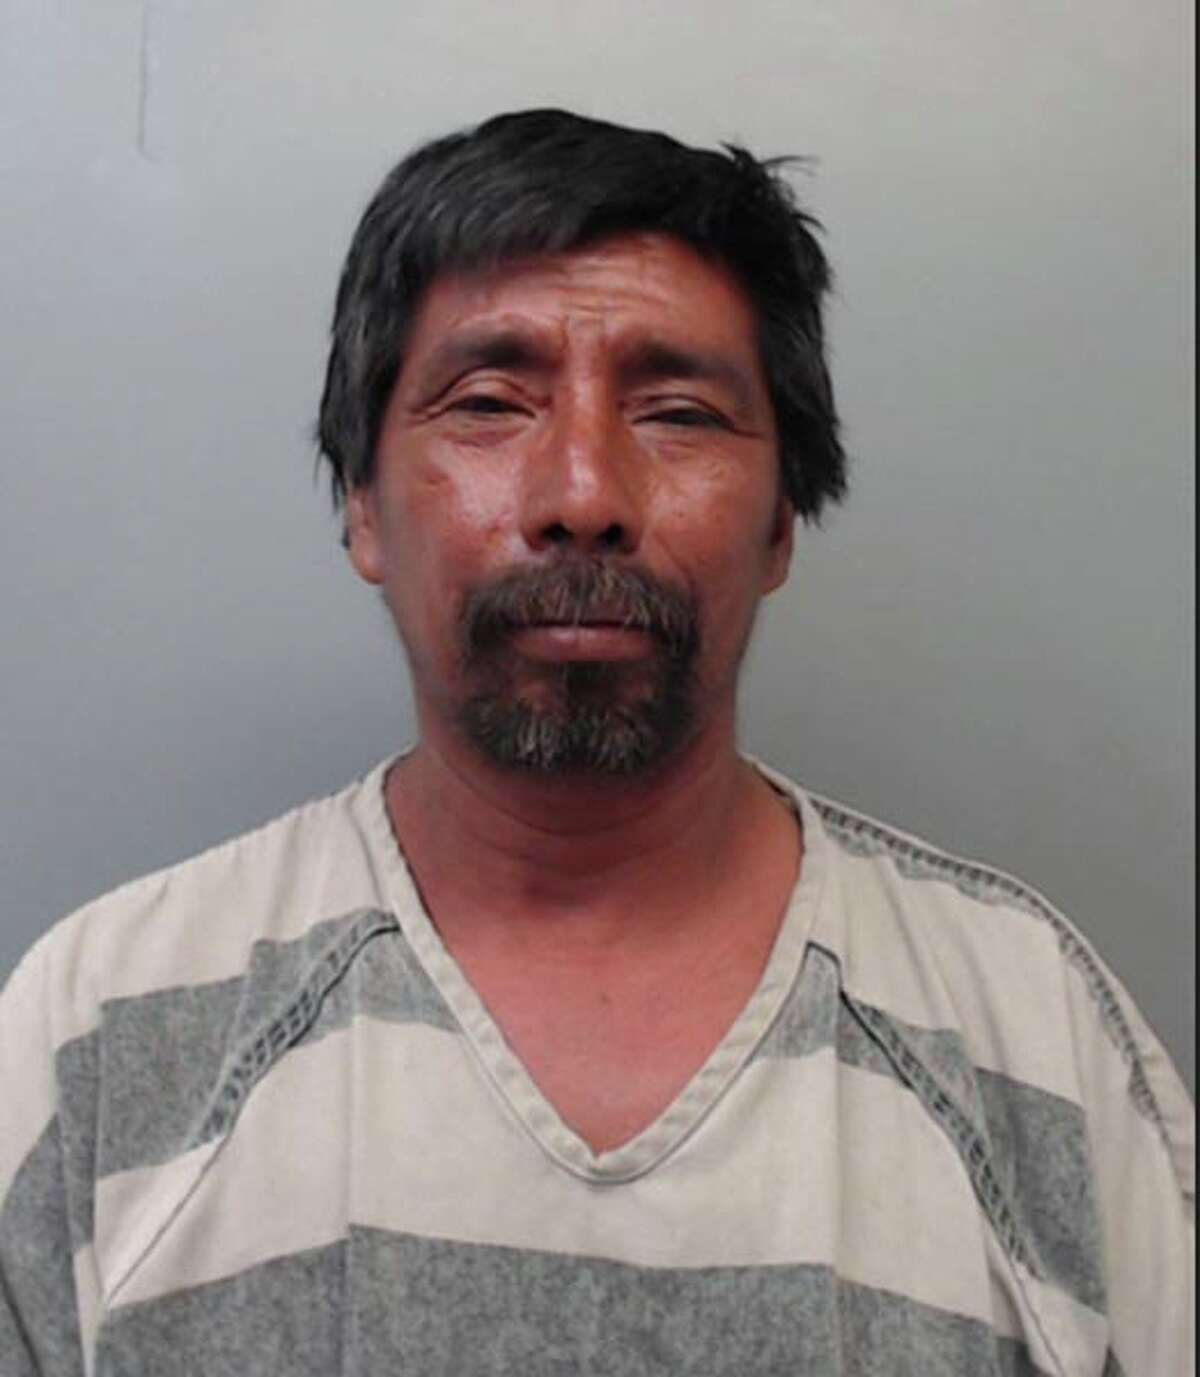 Delfino Guzman, 52, was charged with accident involving injury.